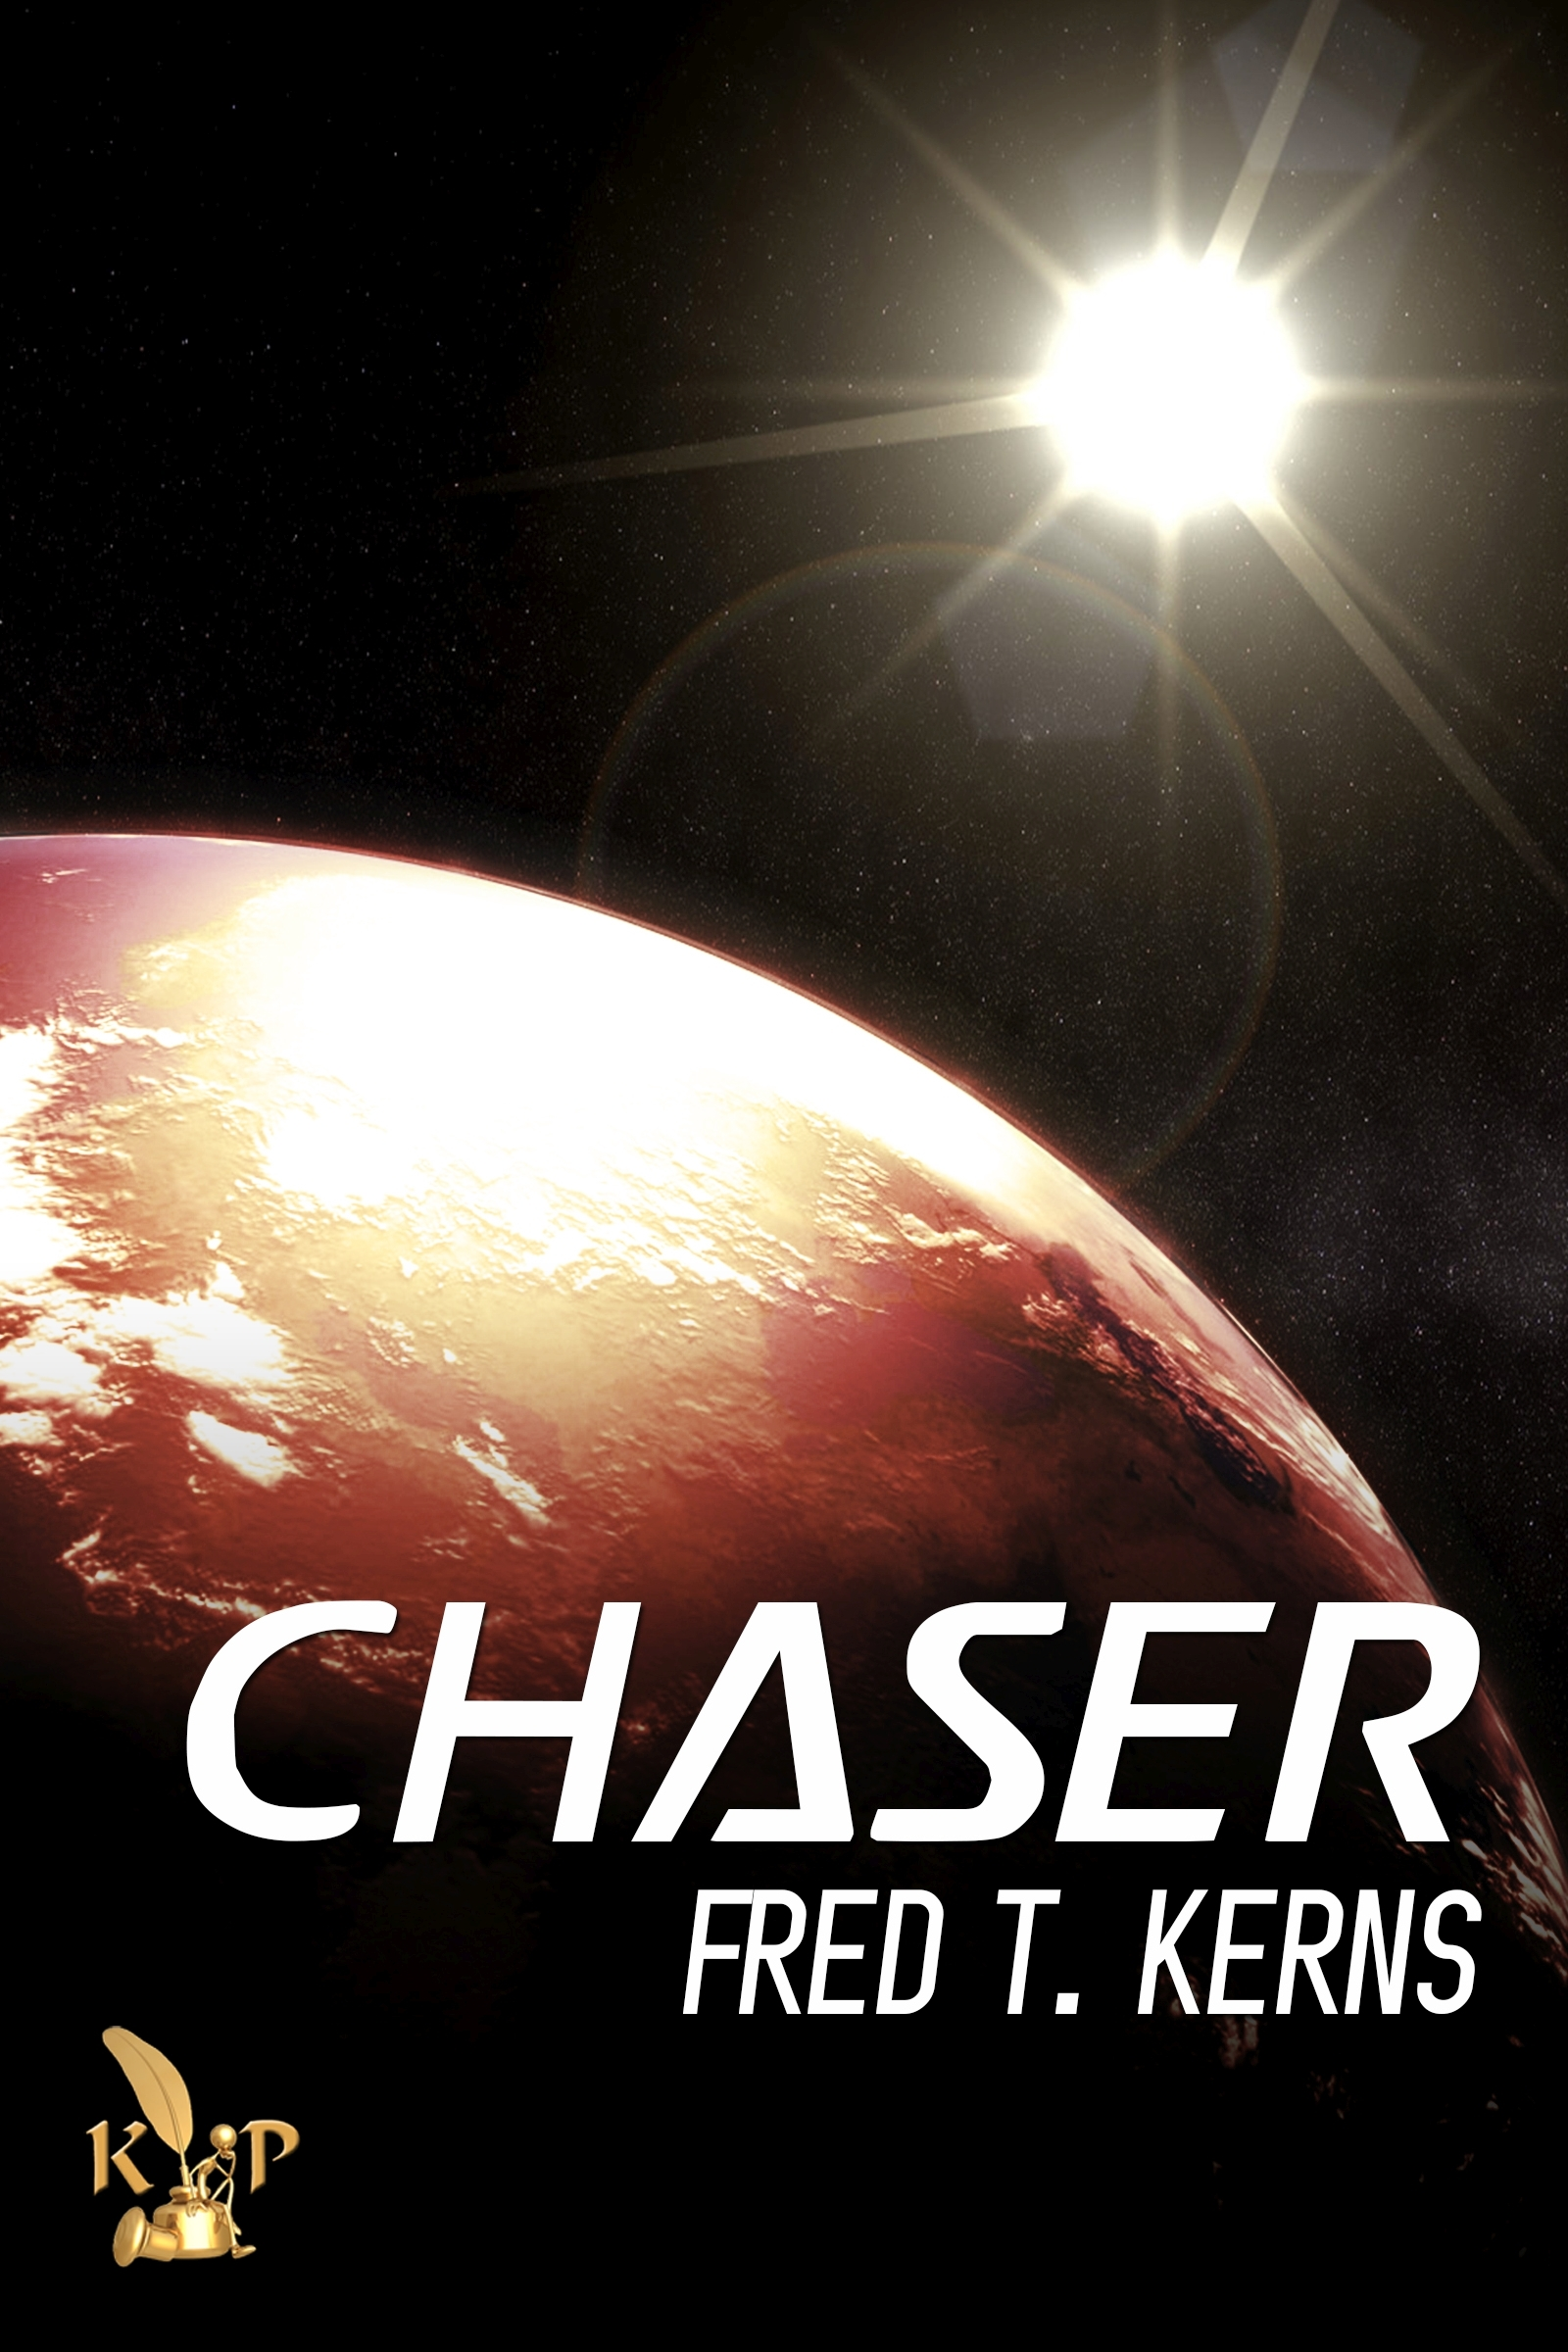 Chaser Fred T. Kerns